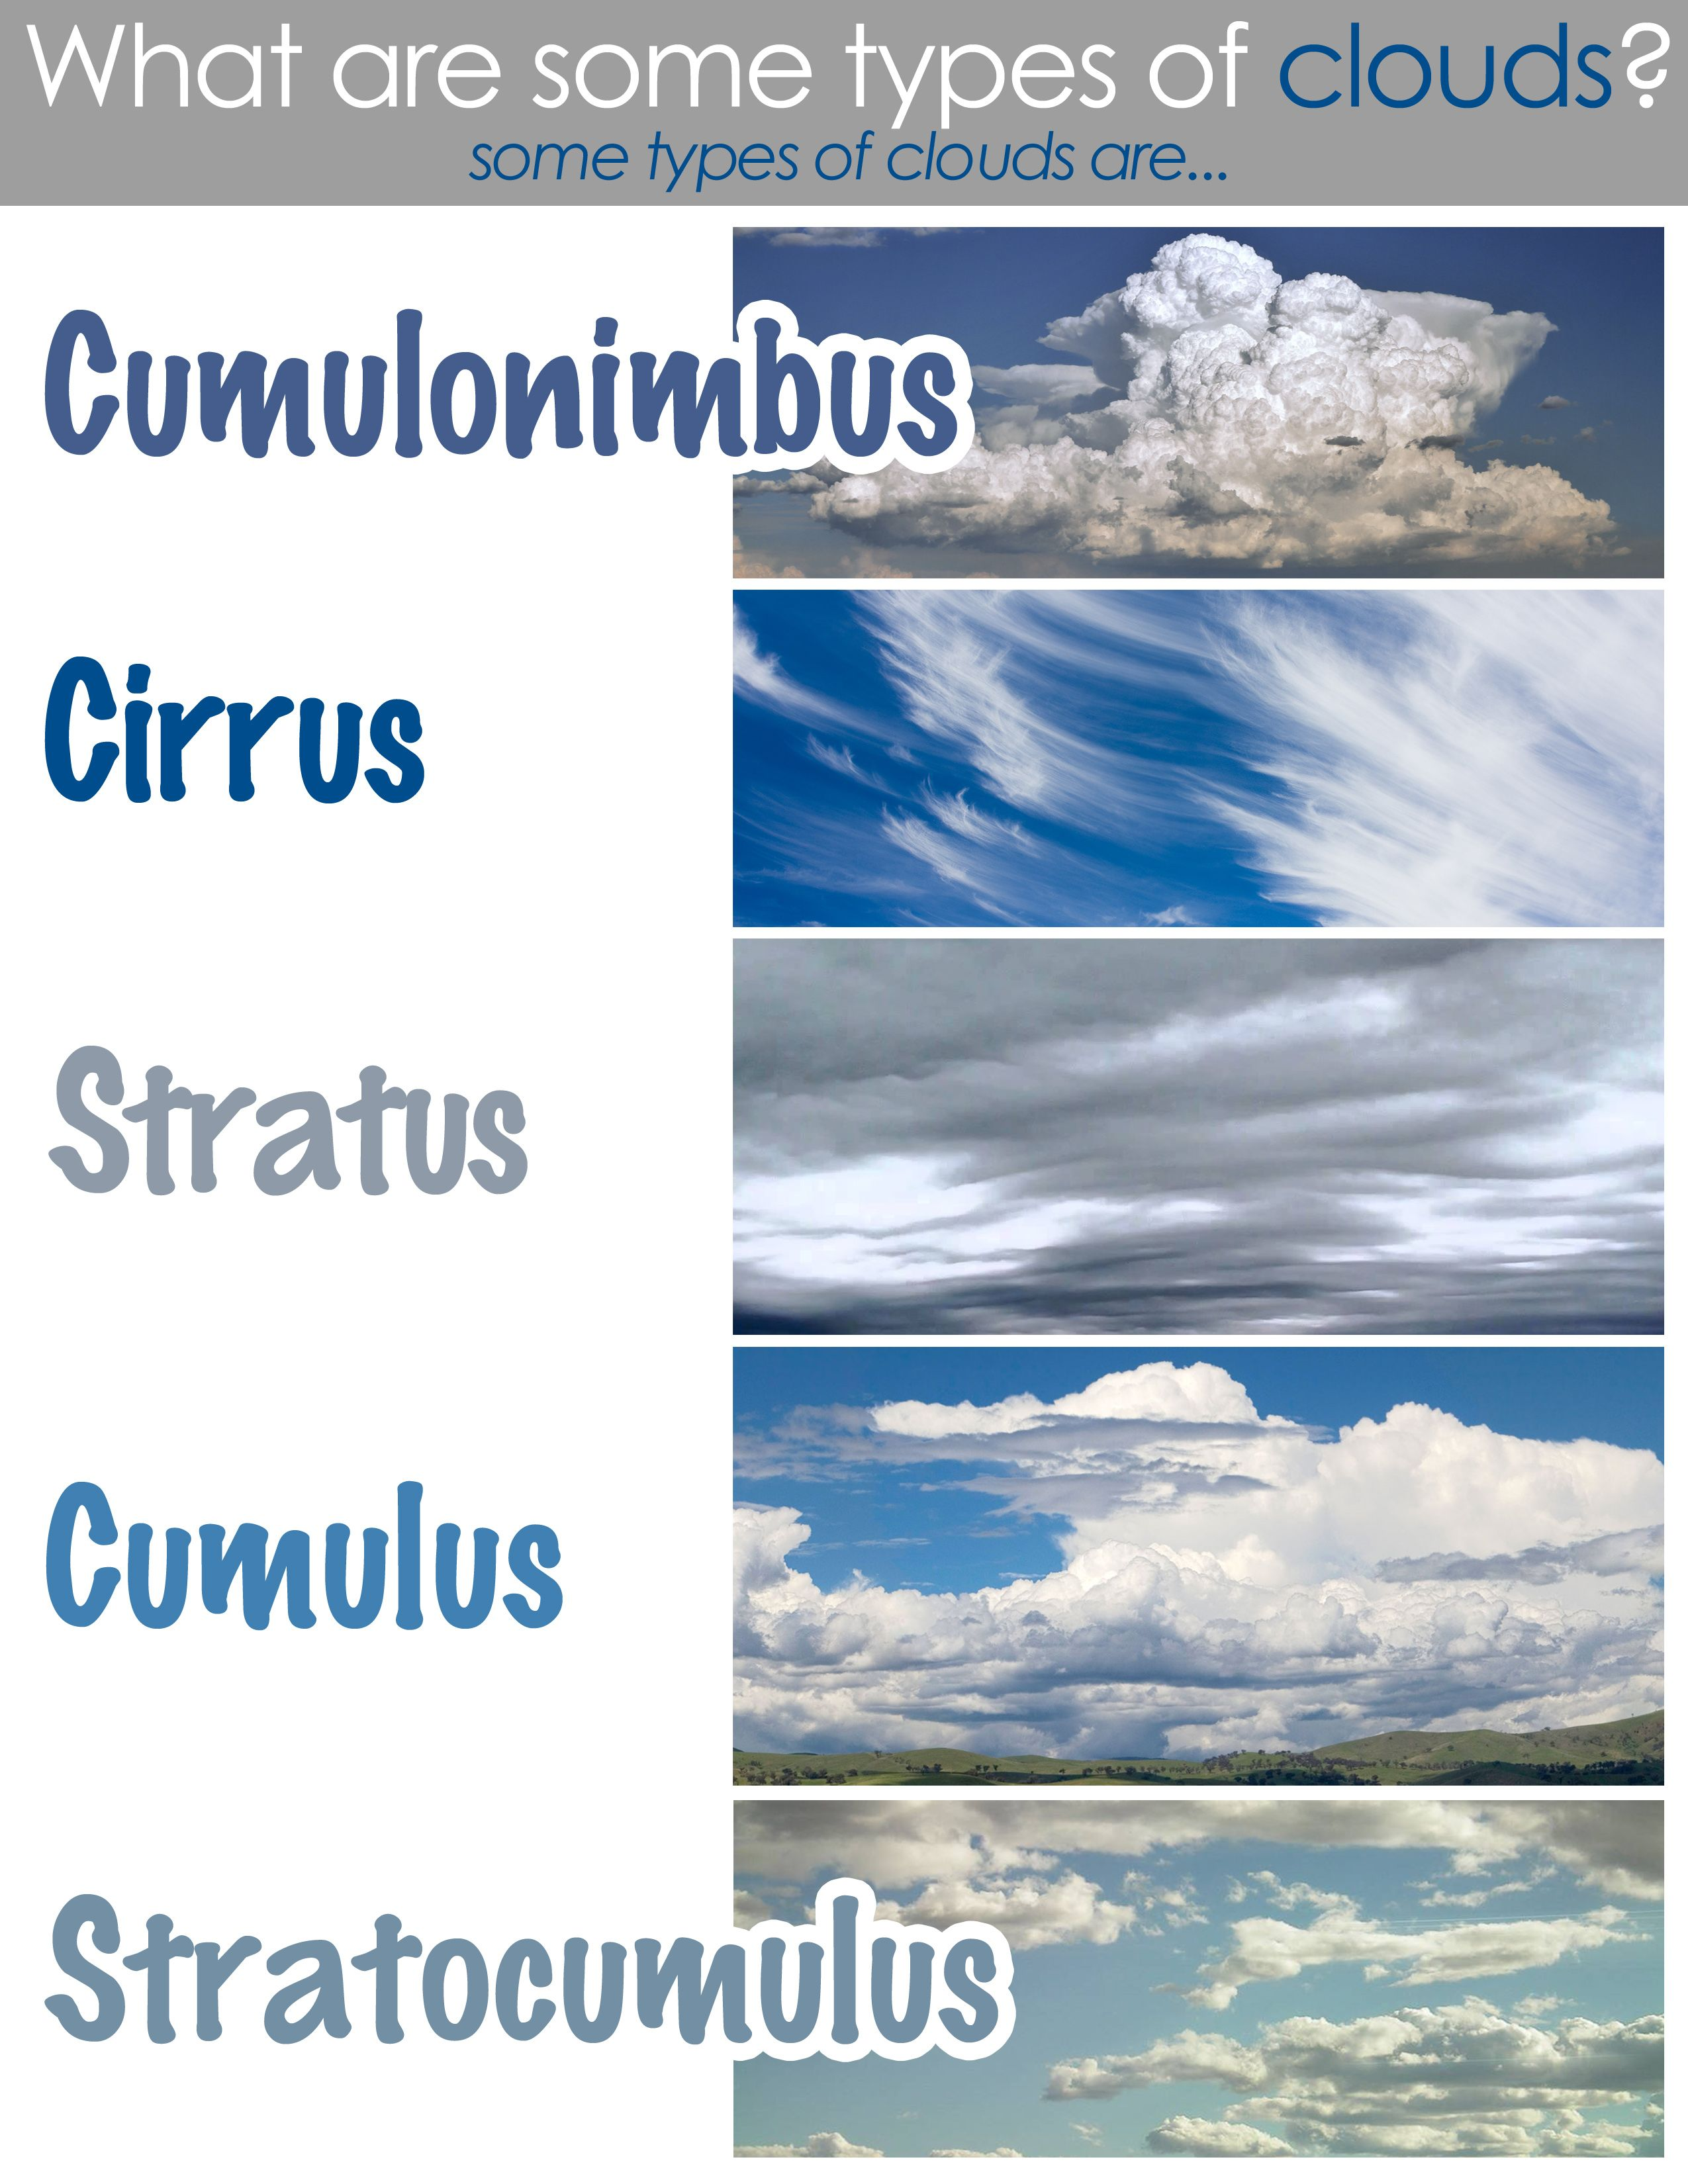 Worksheets Types Of Clouds Worksheet classical conversations cycle 1 week 23 science types of clouds clouds